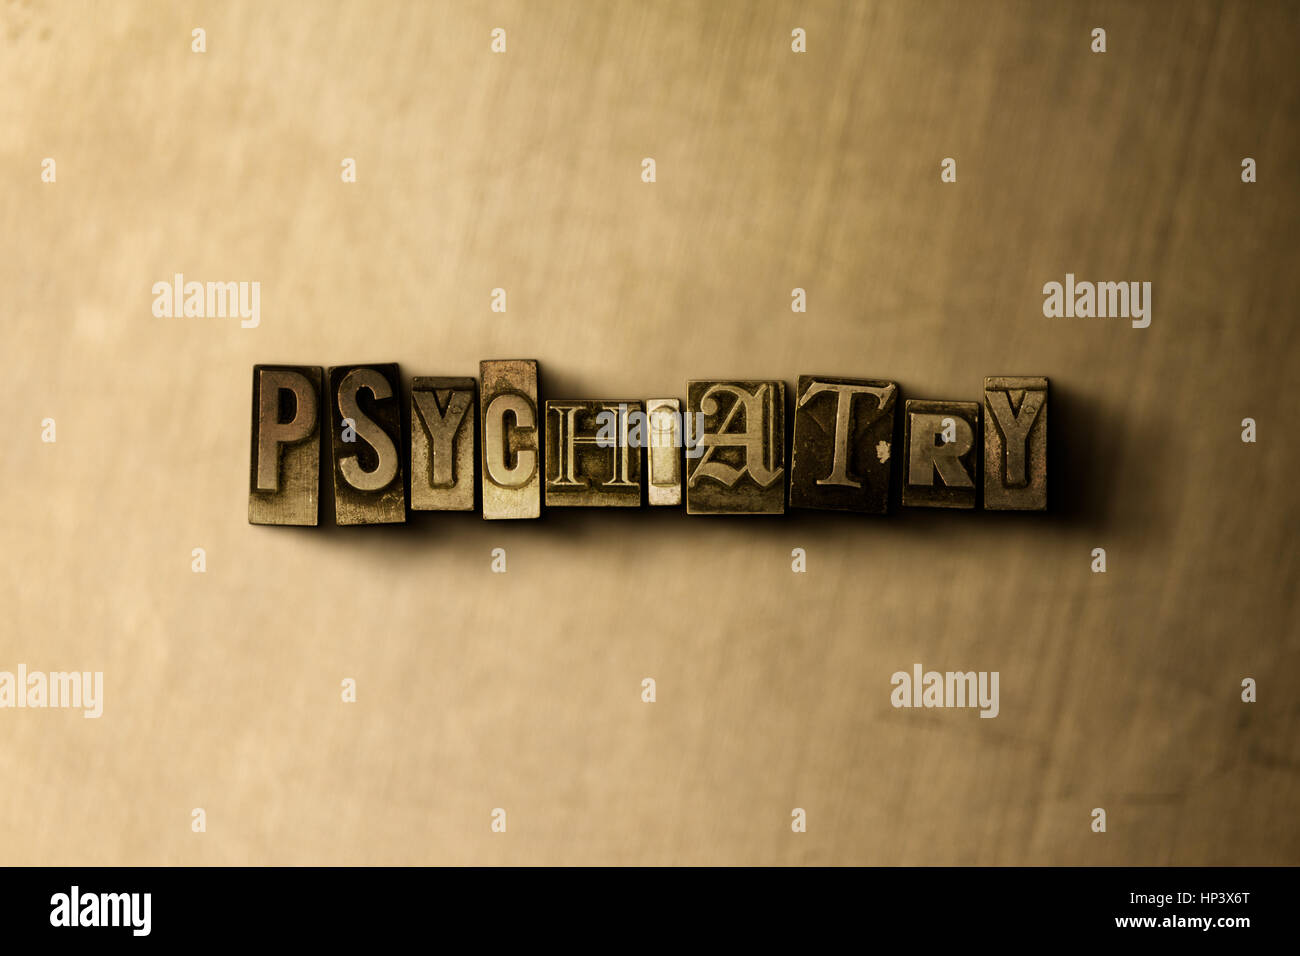 PSYCHIATRY - close-up of grungy vintage typeset word on metal backdrop. Royalty free stock illustration.  Can be - Stock Image